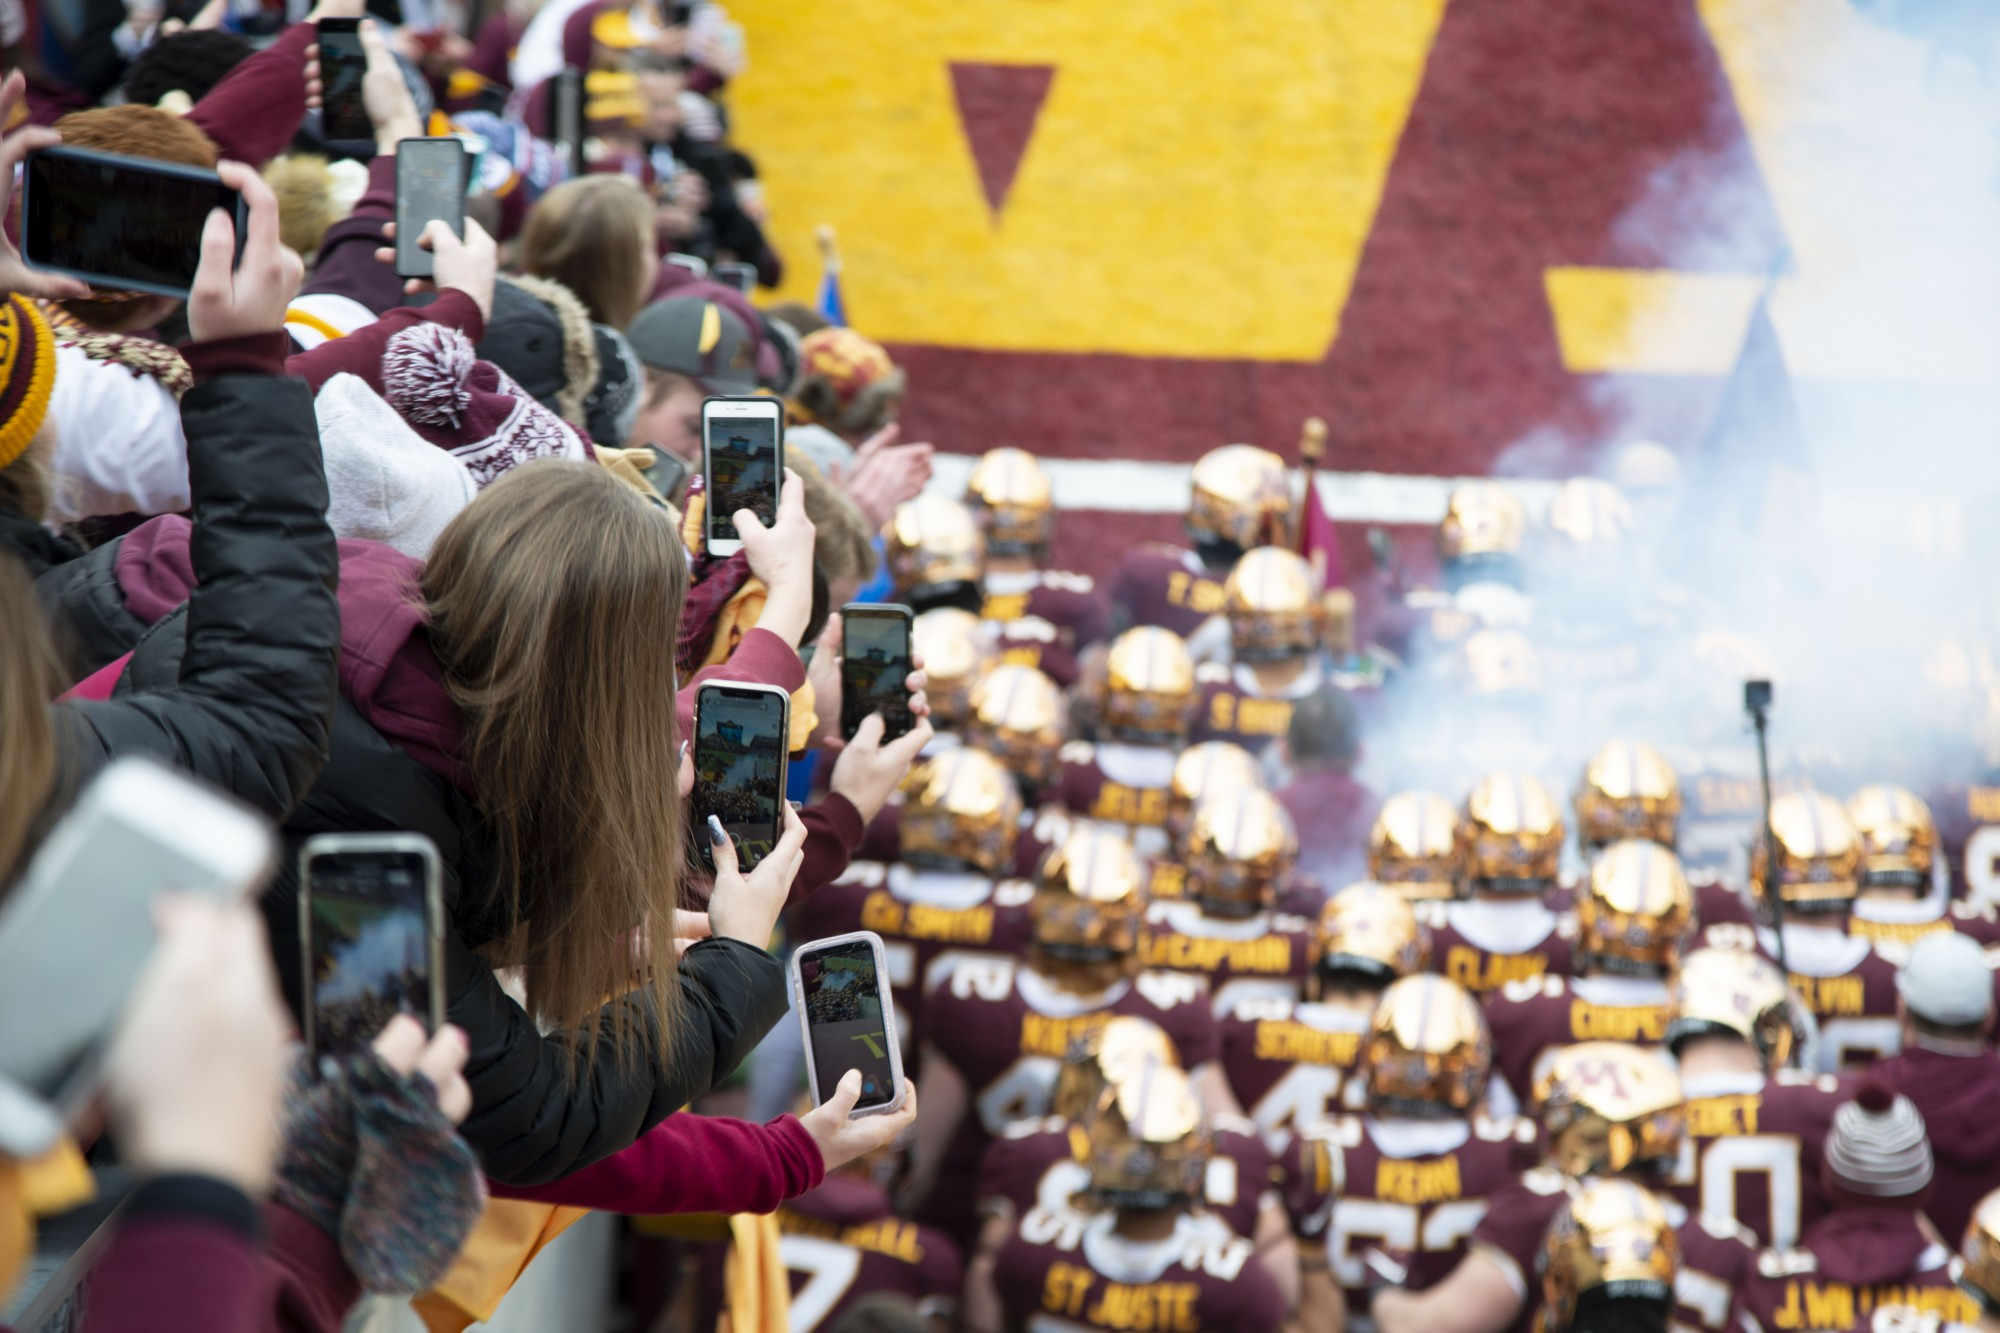 Fans cheer for the Gophers as they enter the field at TCF Bank Stadium on Saturday, Nov. 9. The Gophers defeated Penn State 31-26 to bring their record to 9-0. A first since 1904.